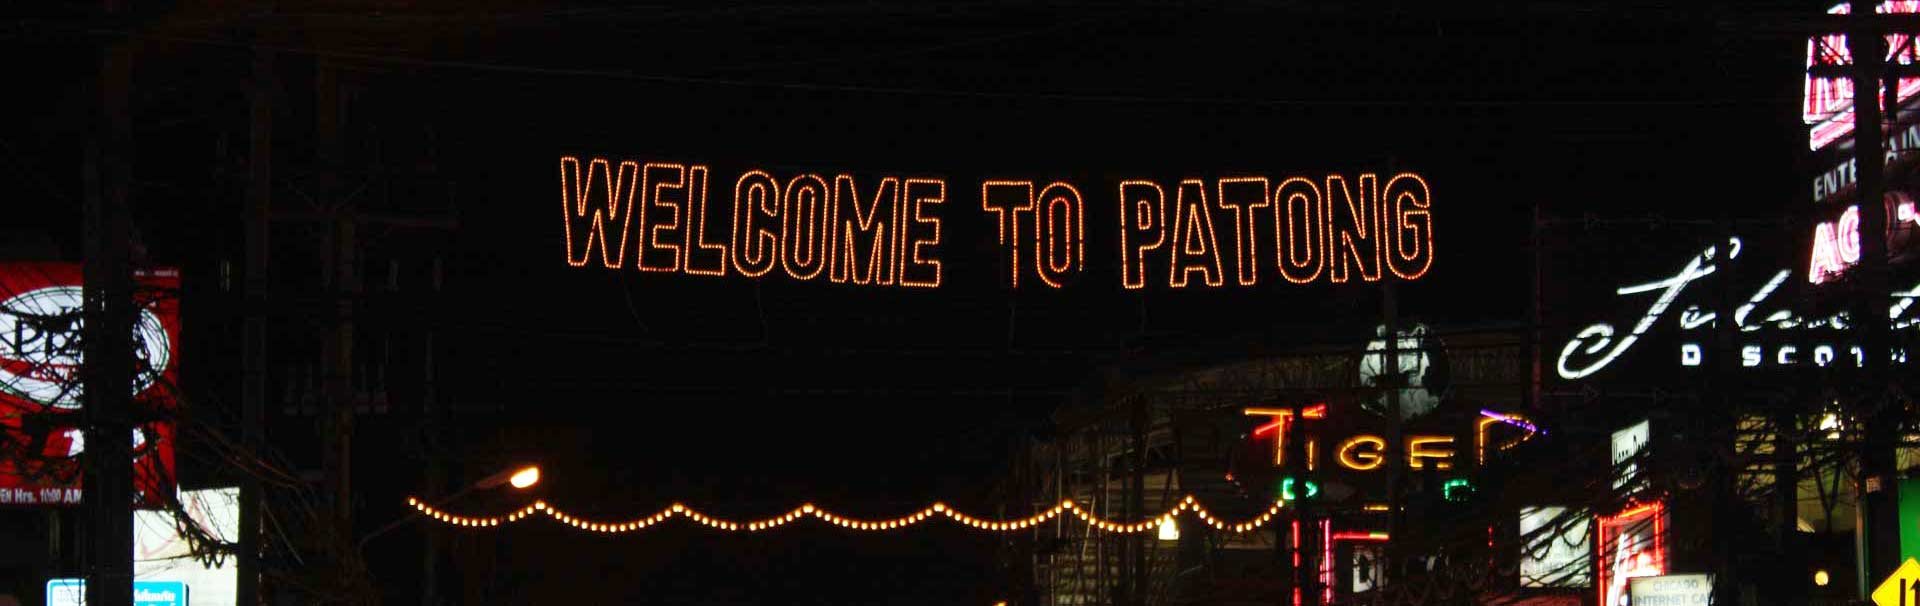 Welcome to Patong